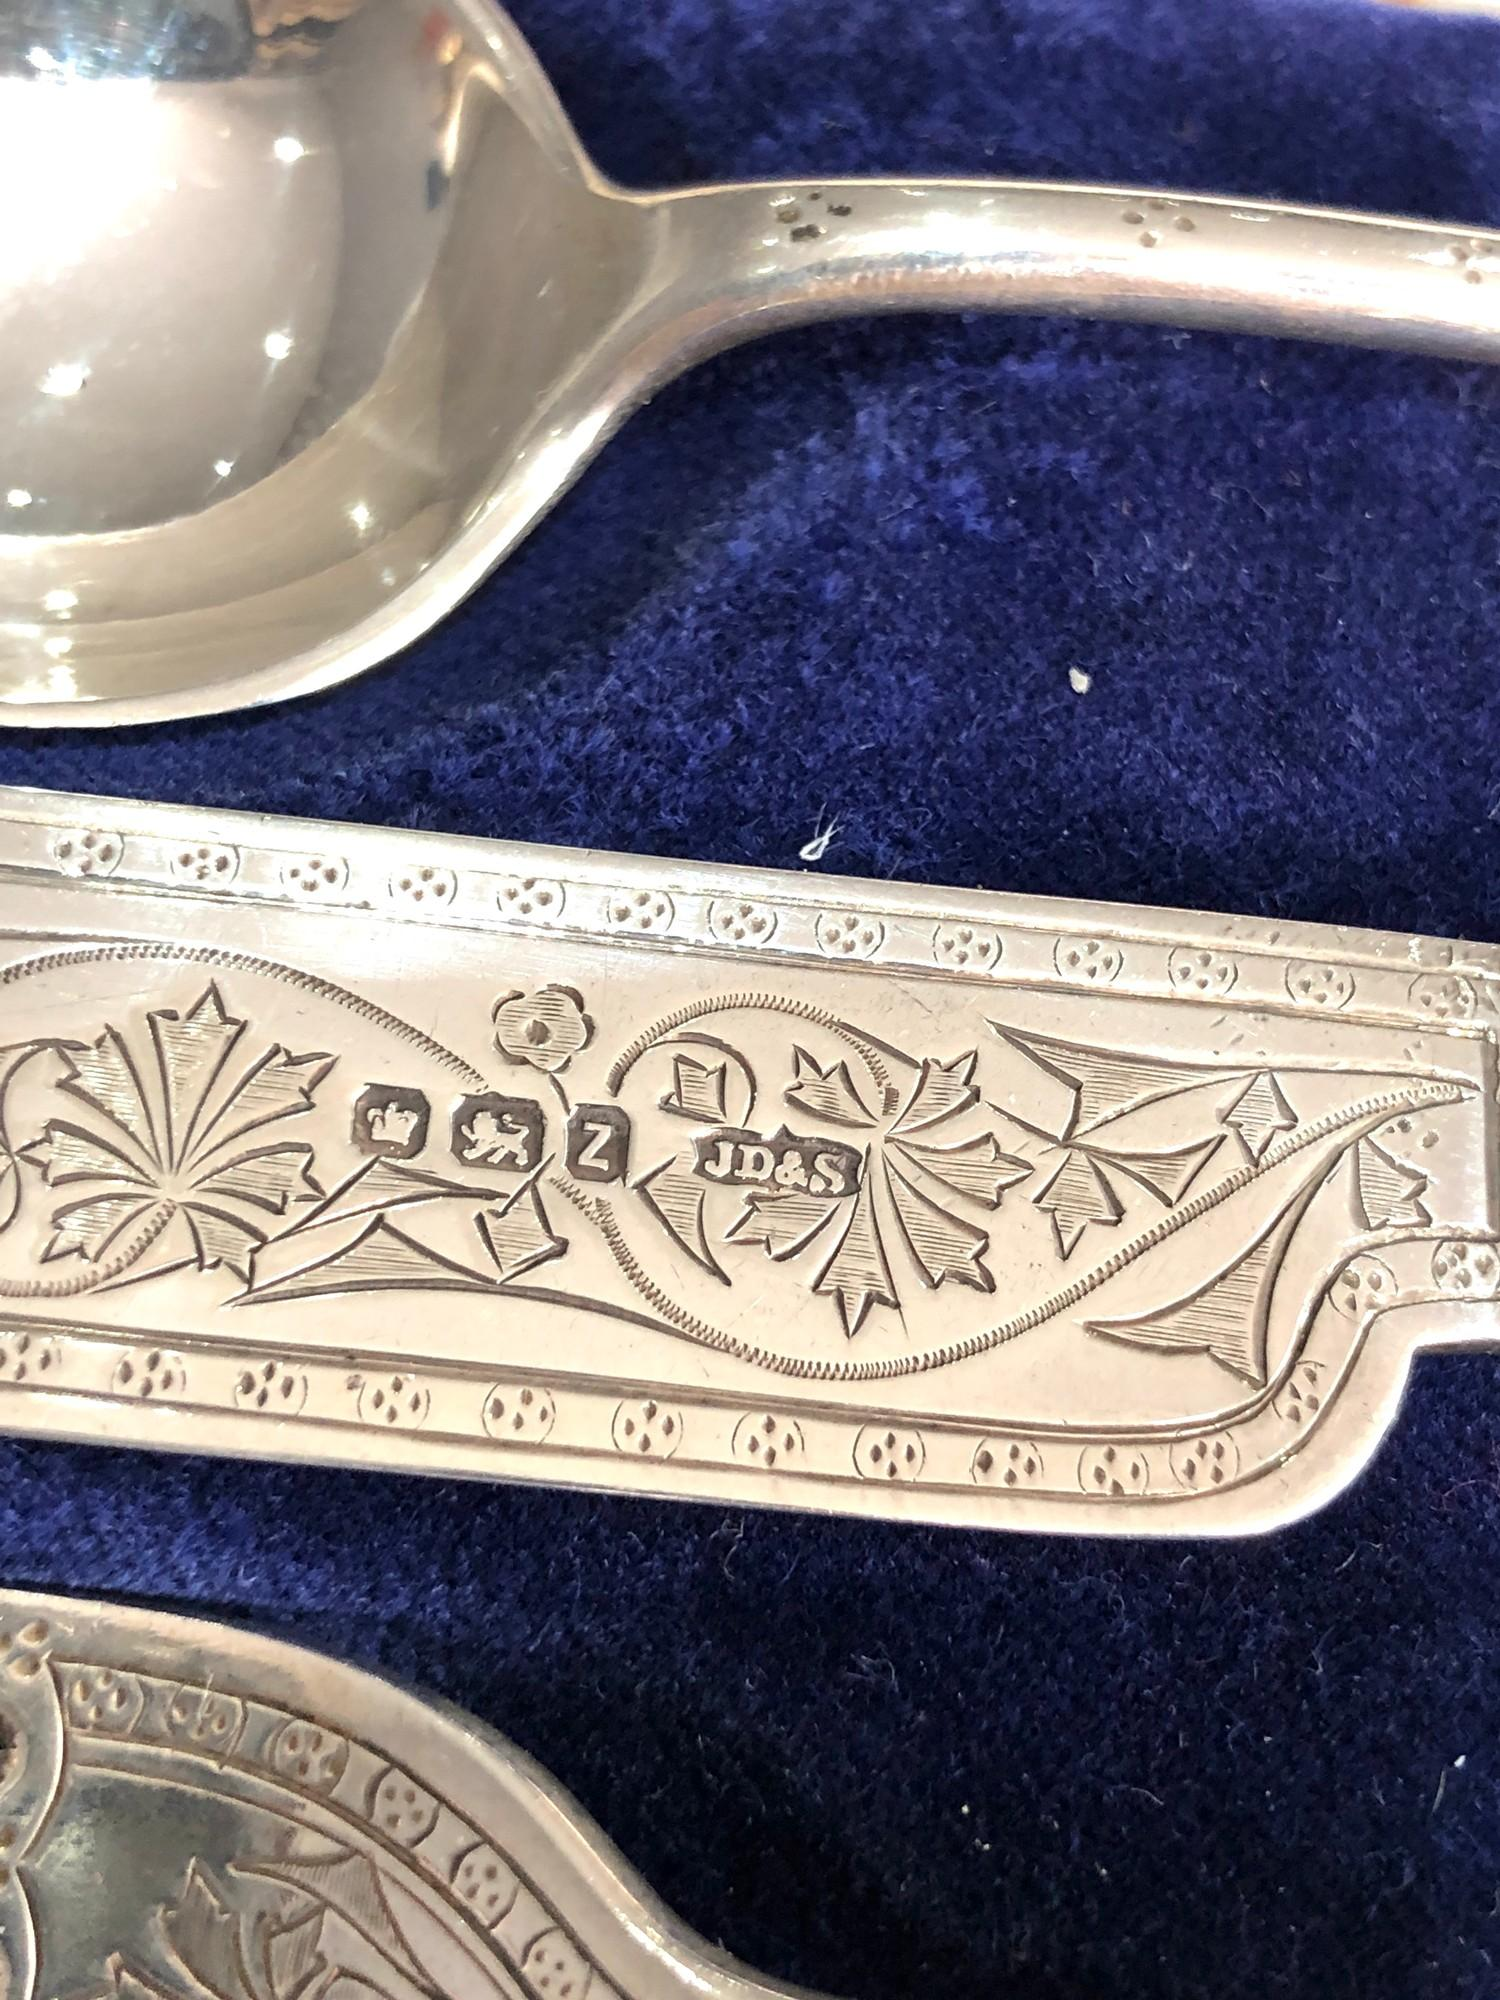 Antique silver christening set boxed james dixon & sons - Image 4 of 5